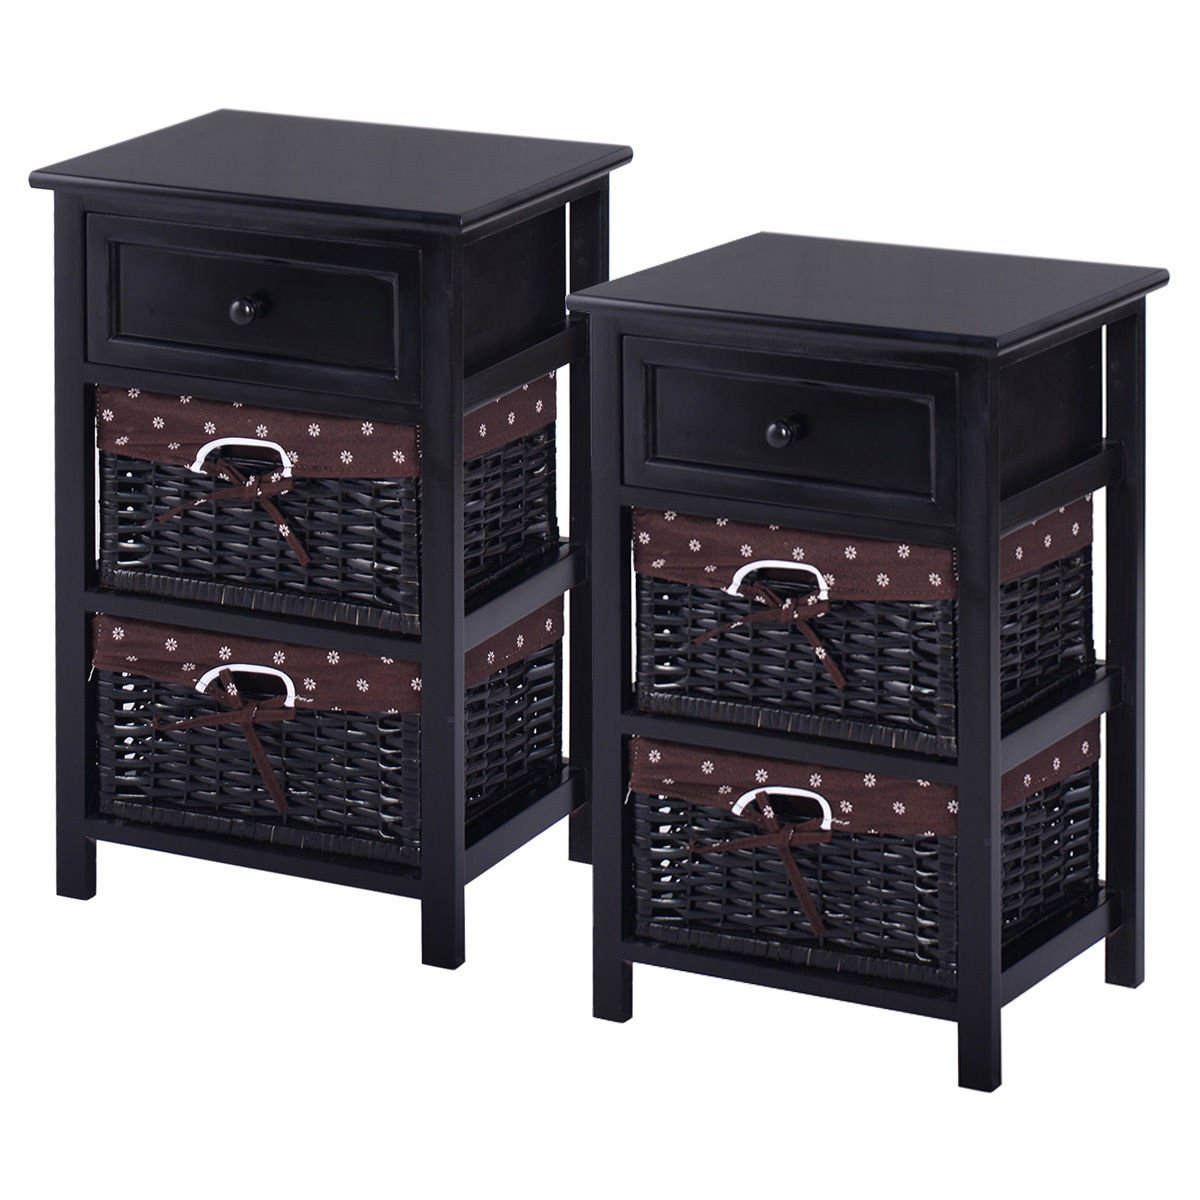 Giantex Black Night Stand 3 Tier 1 Drawer Bedside End Table Organizer Wood W/2 Basket,Set Of 2(2Black)